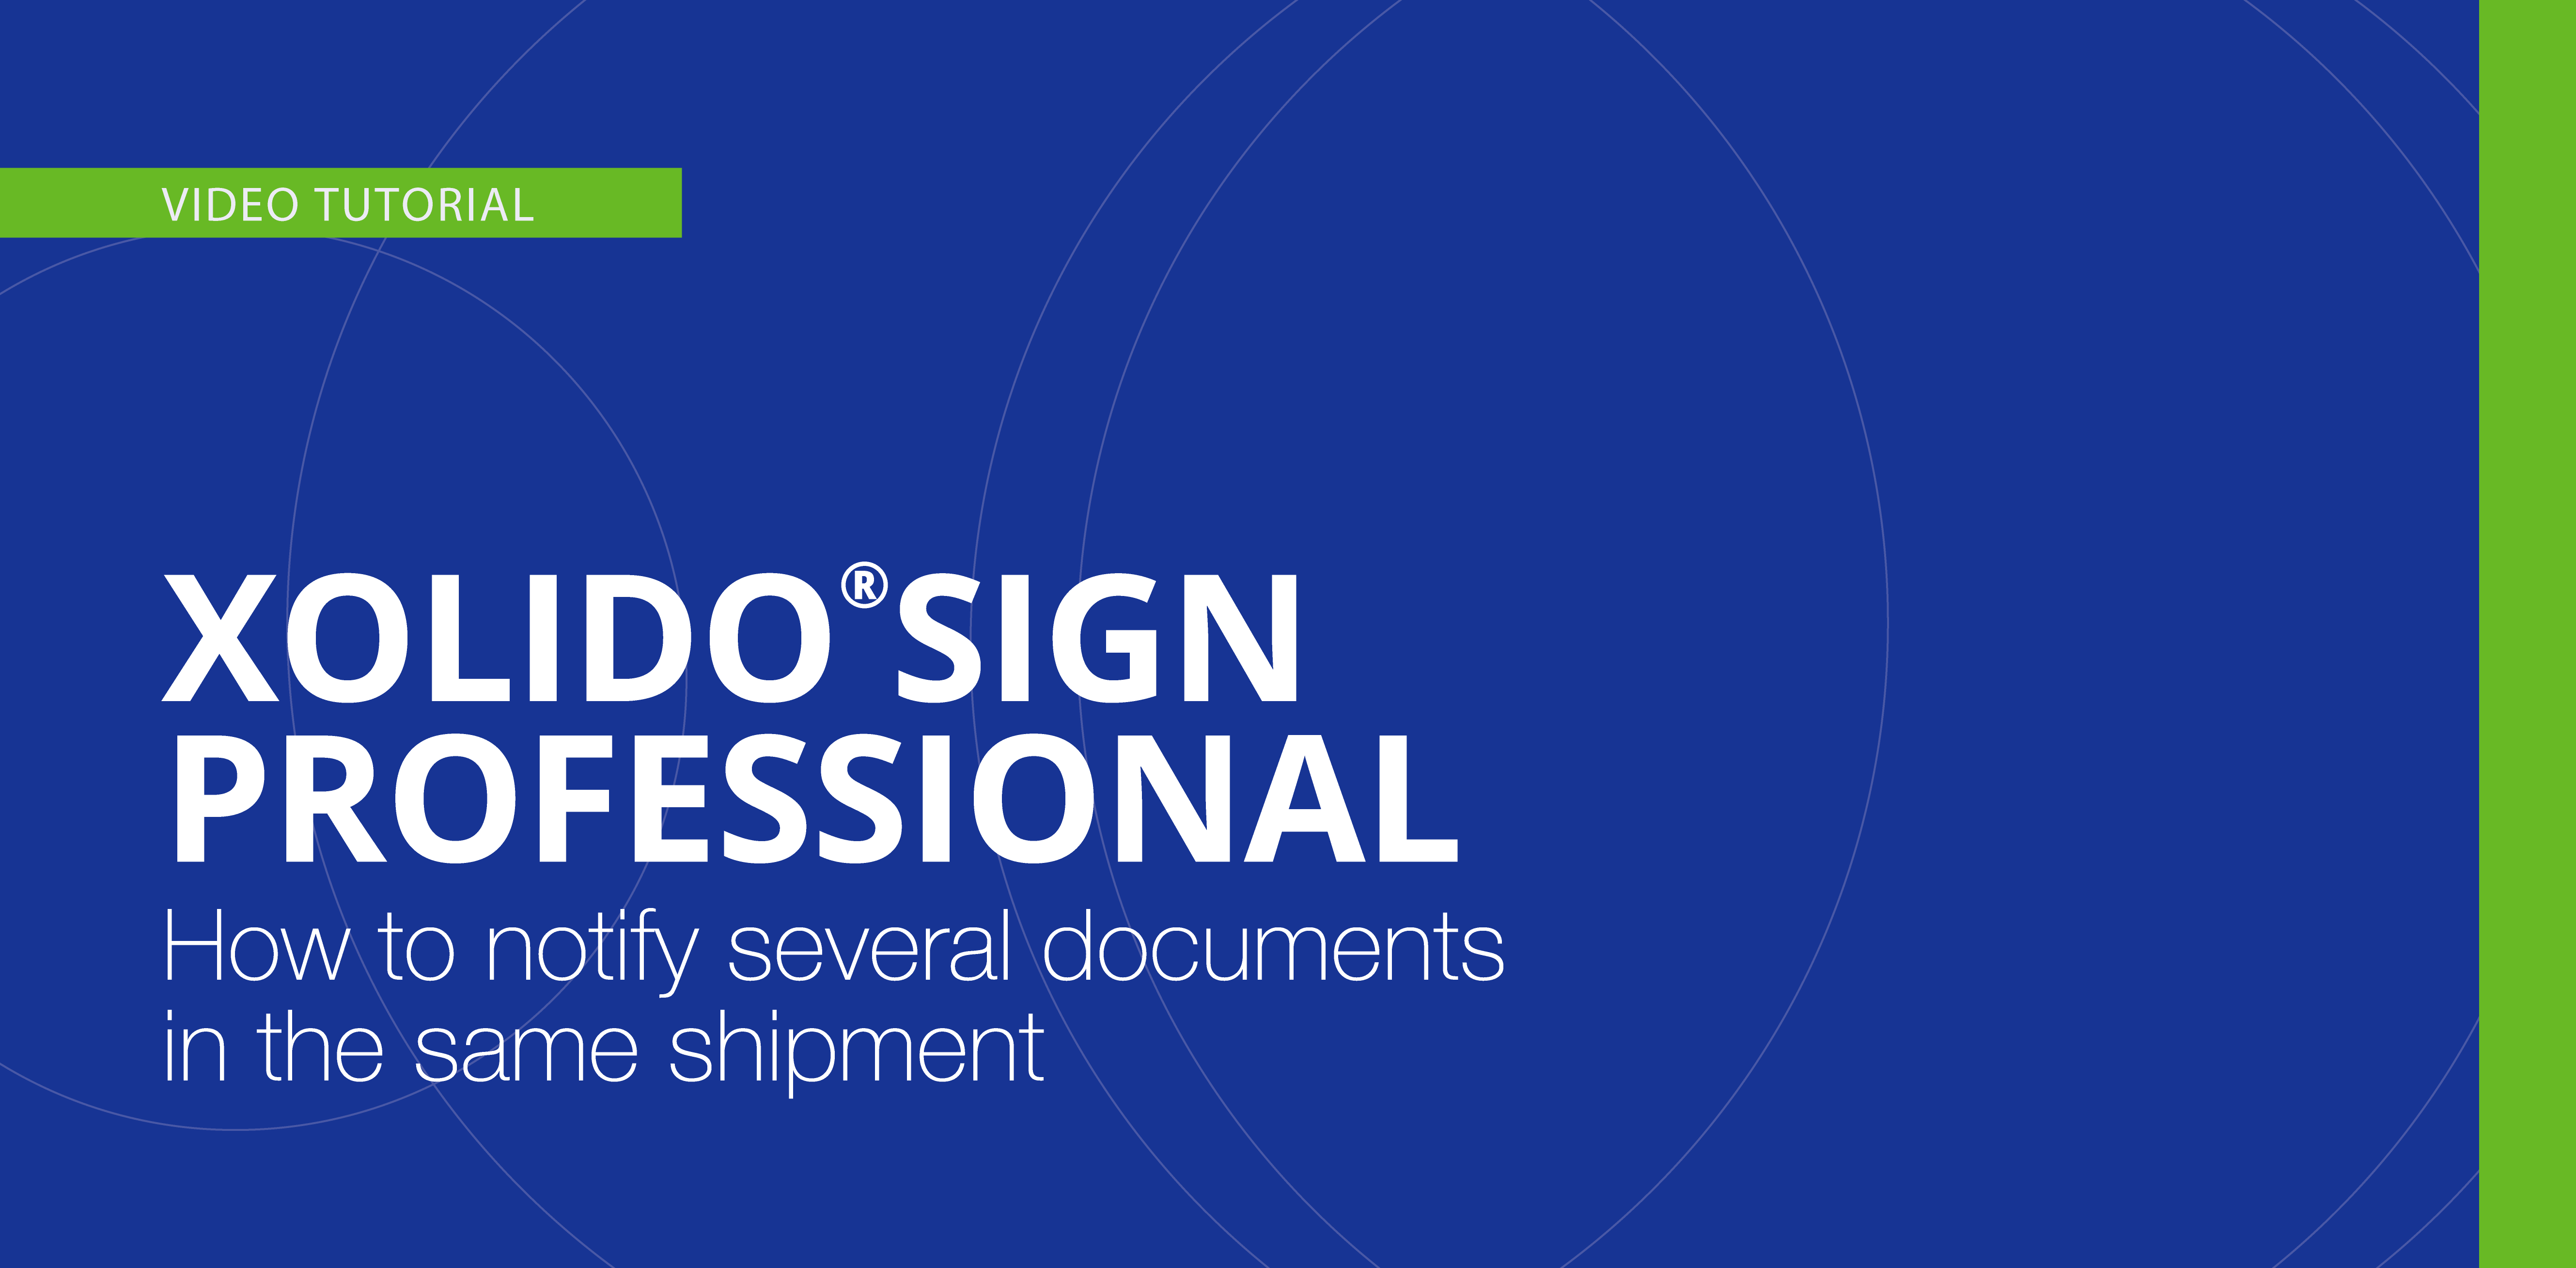 How to notify several documents in the same shipment